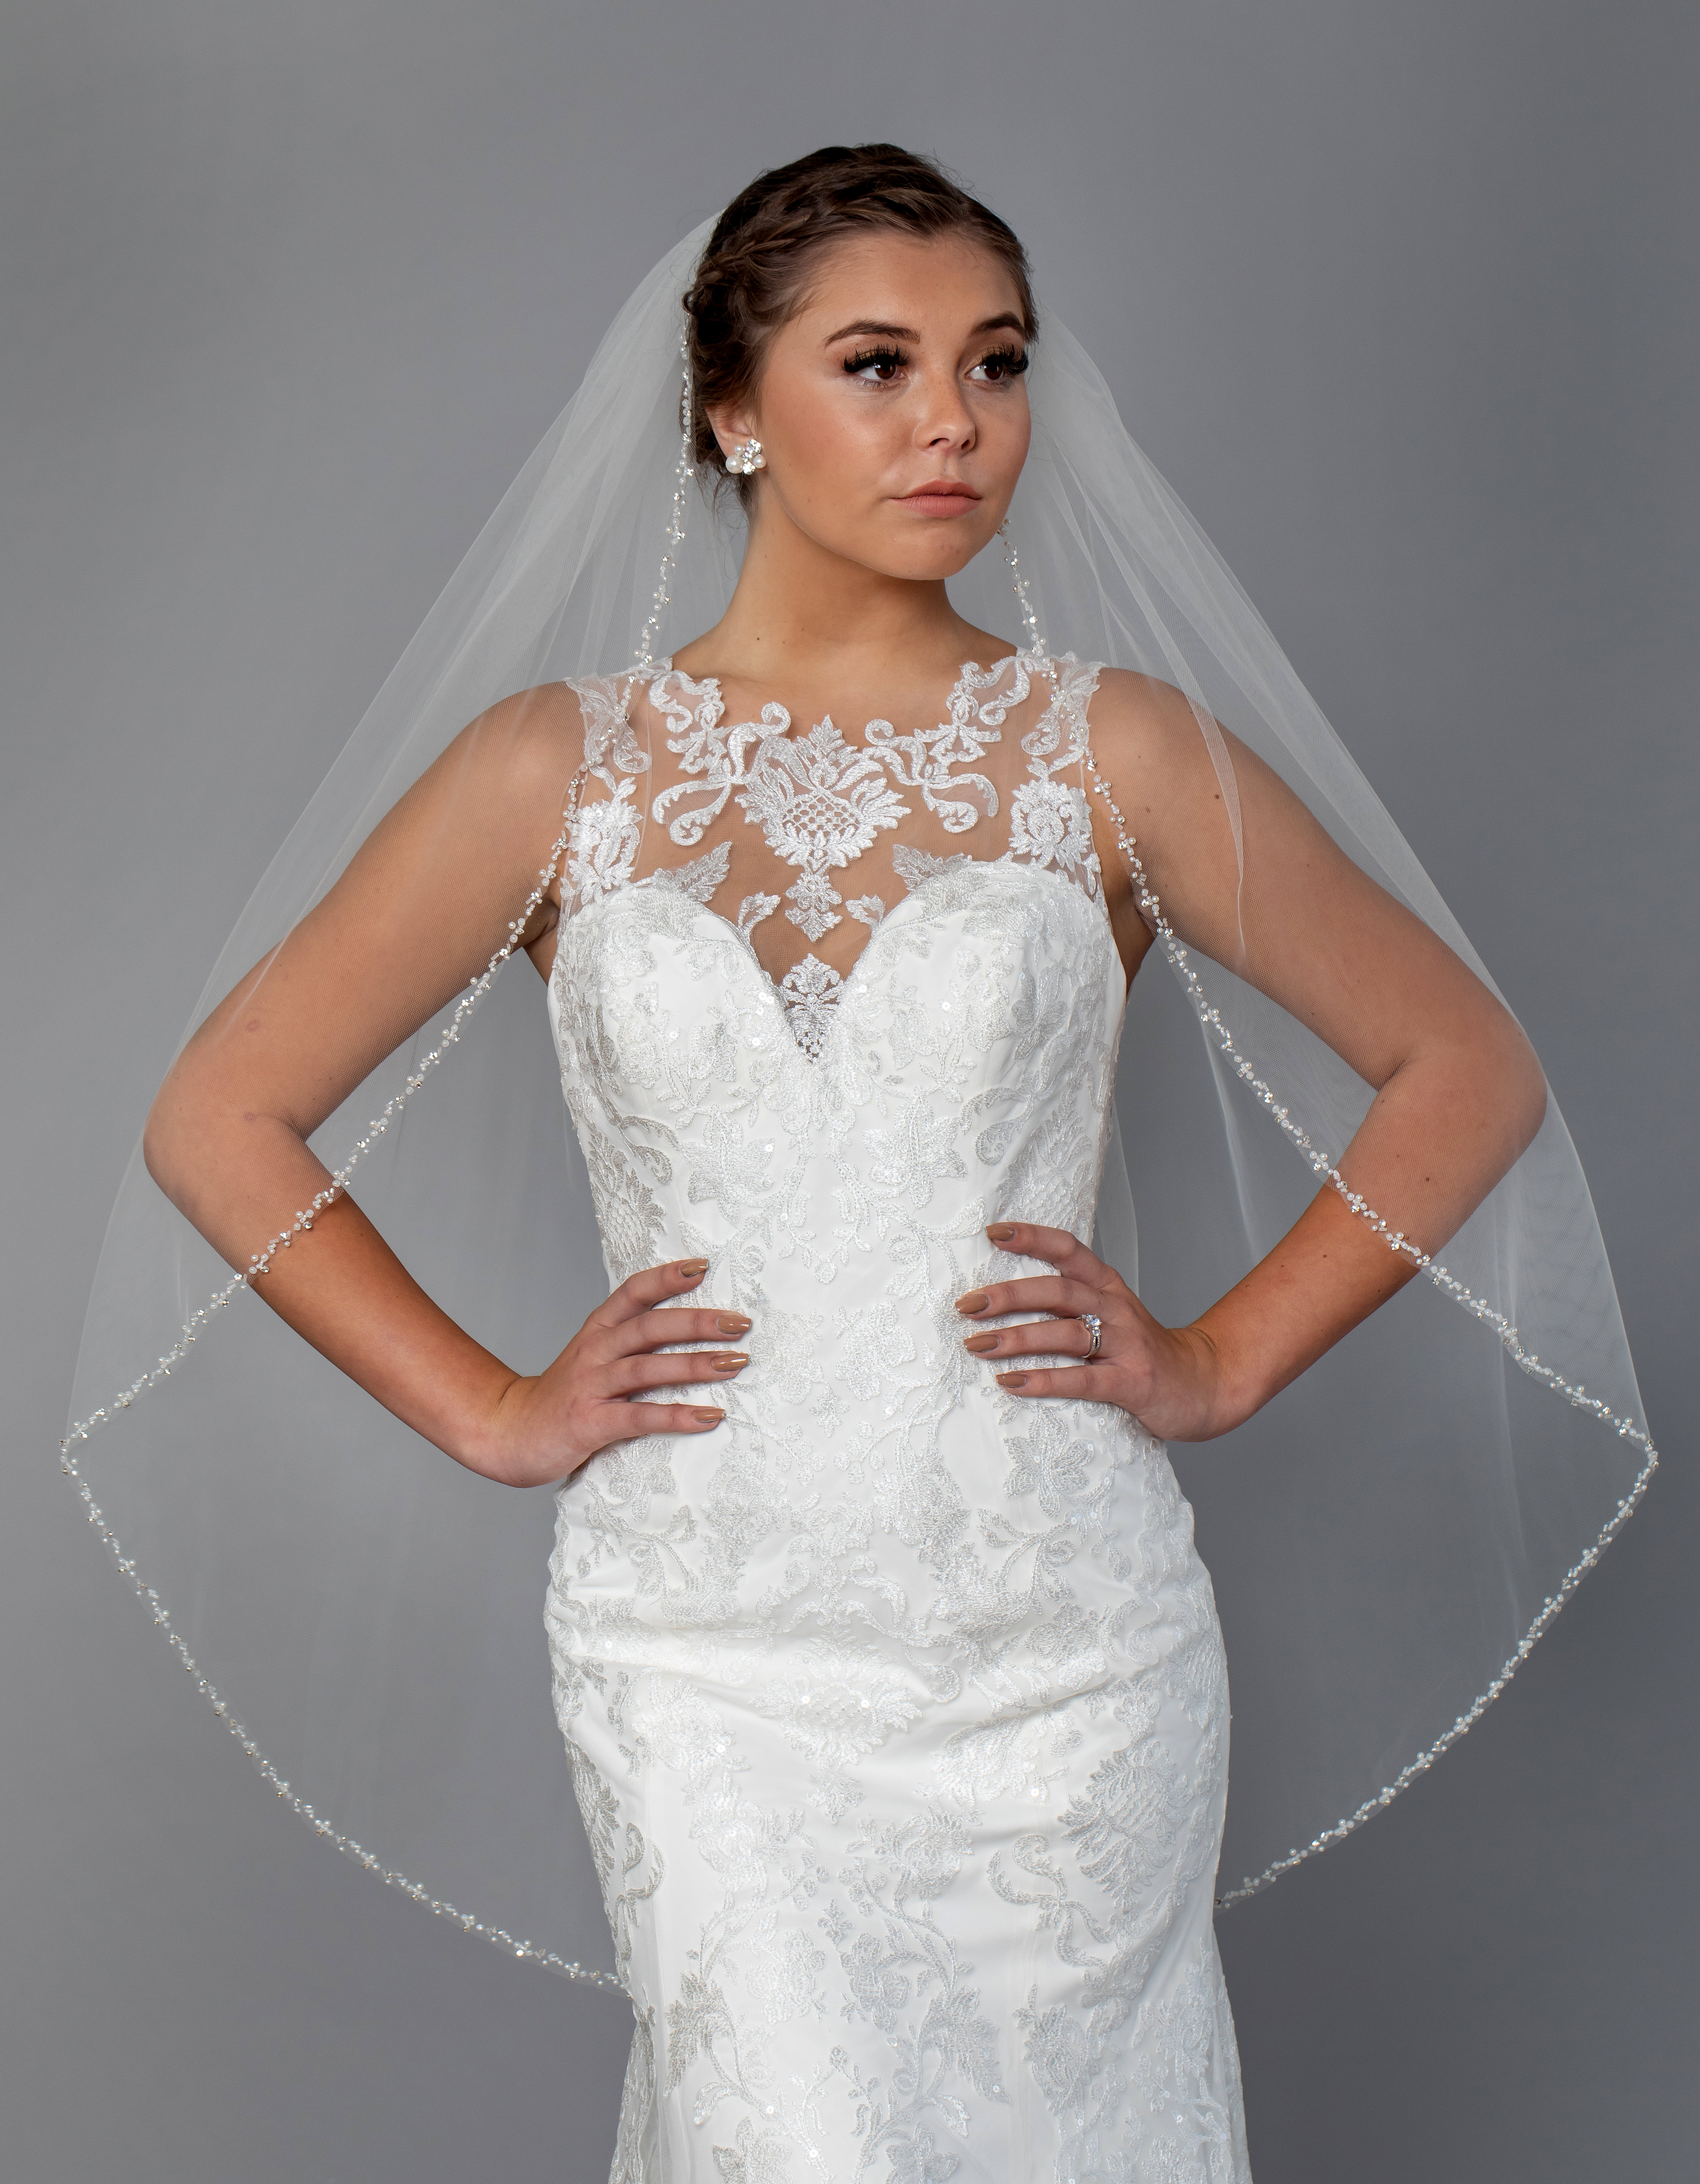 Bridal Classics Marquise Veil Collection MV-2487